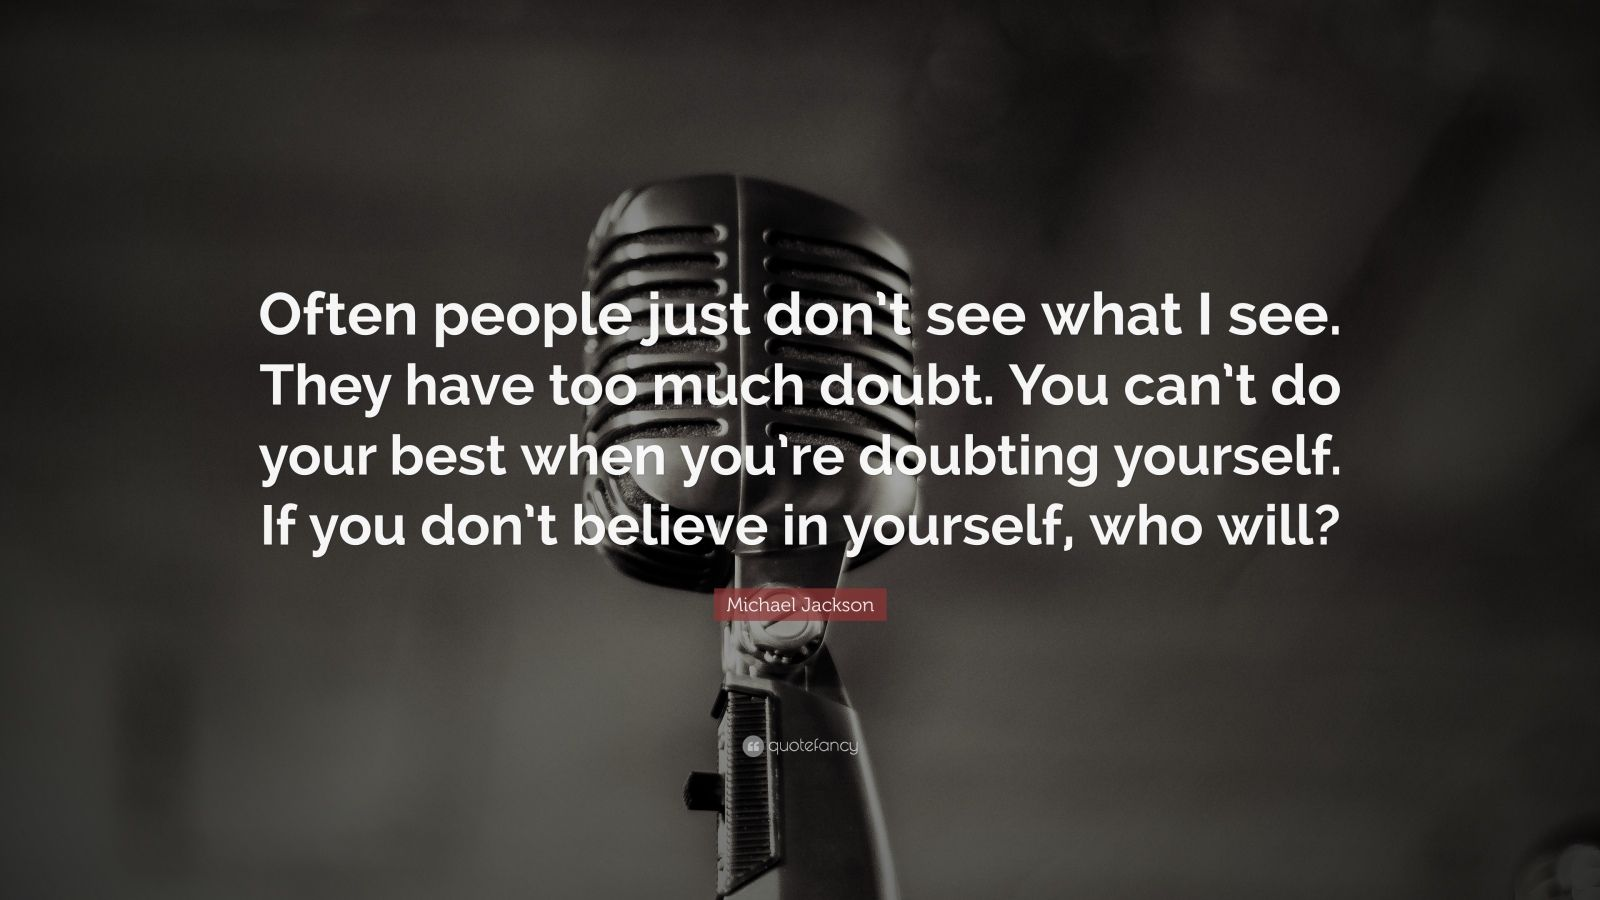 """Michael Jackson Quote: """"Often people just don't see what I see. They have too much doubt. You can't do your best when you're doubting yourself. If you don't believe in yourself, who will?"""""""